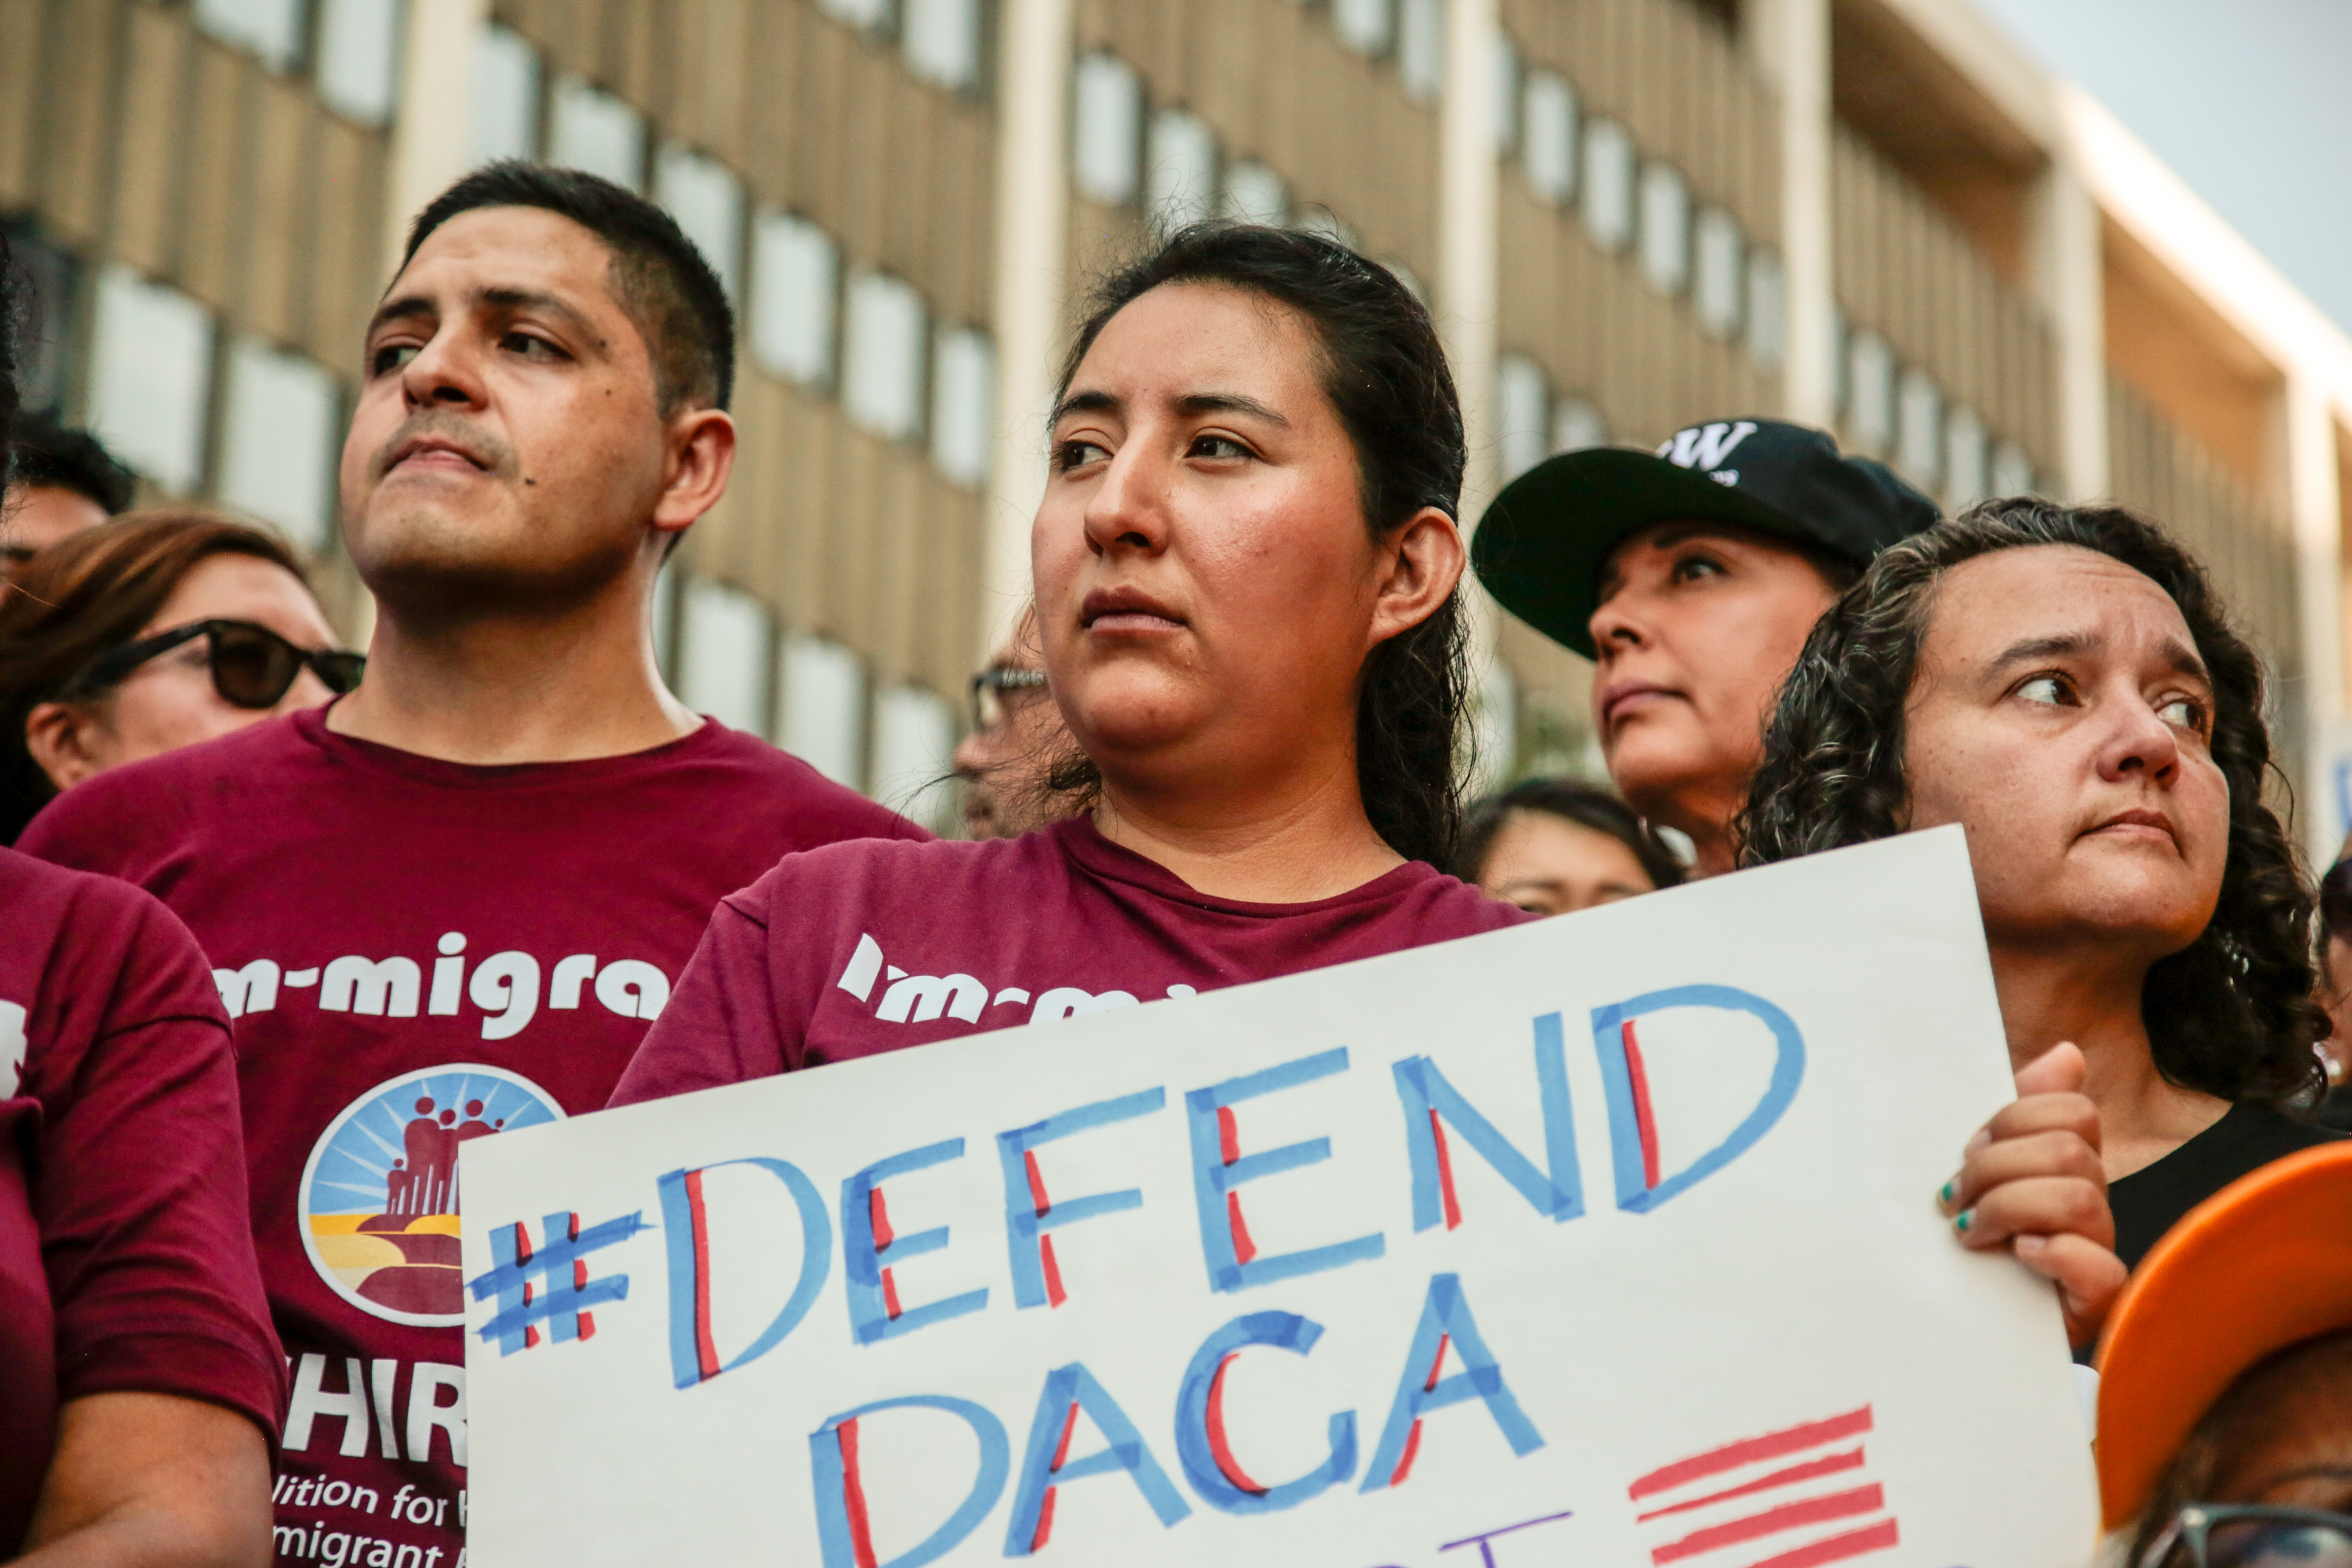 Protesters gather to show support for the Deferred Action for Childhood Arrivals (DACA) program outside the Federal Building in Los Angeles, California, U.S., September 1, 2017. REUTERS/Kyle Grillot - RC1B156F7DA0